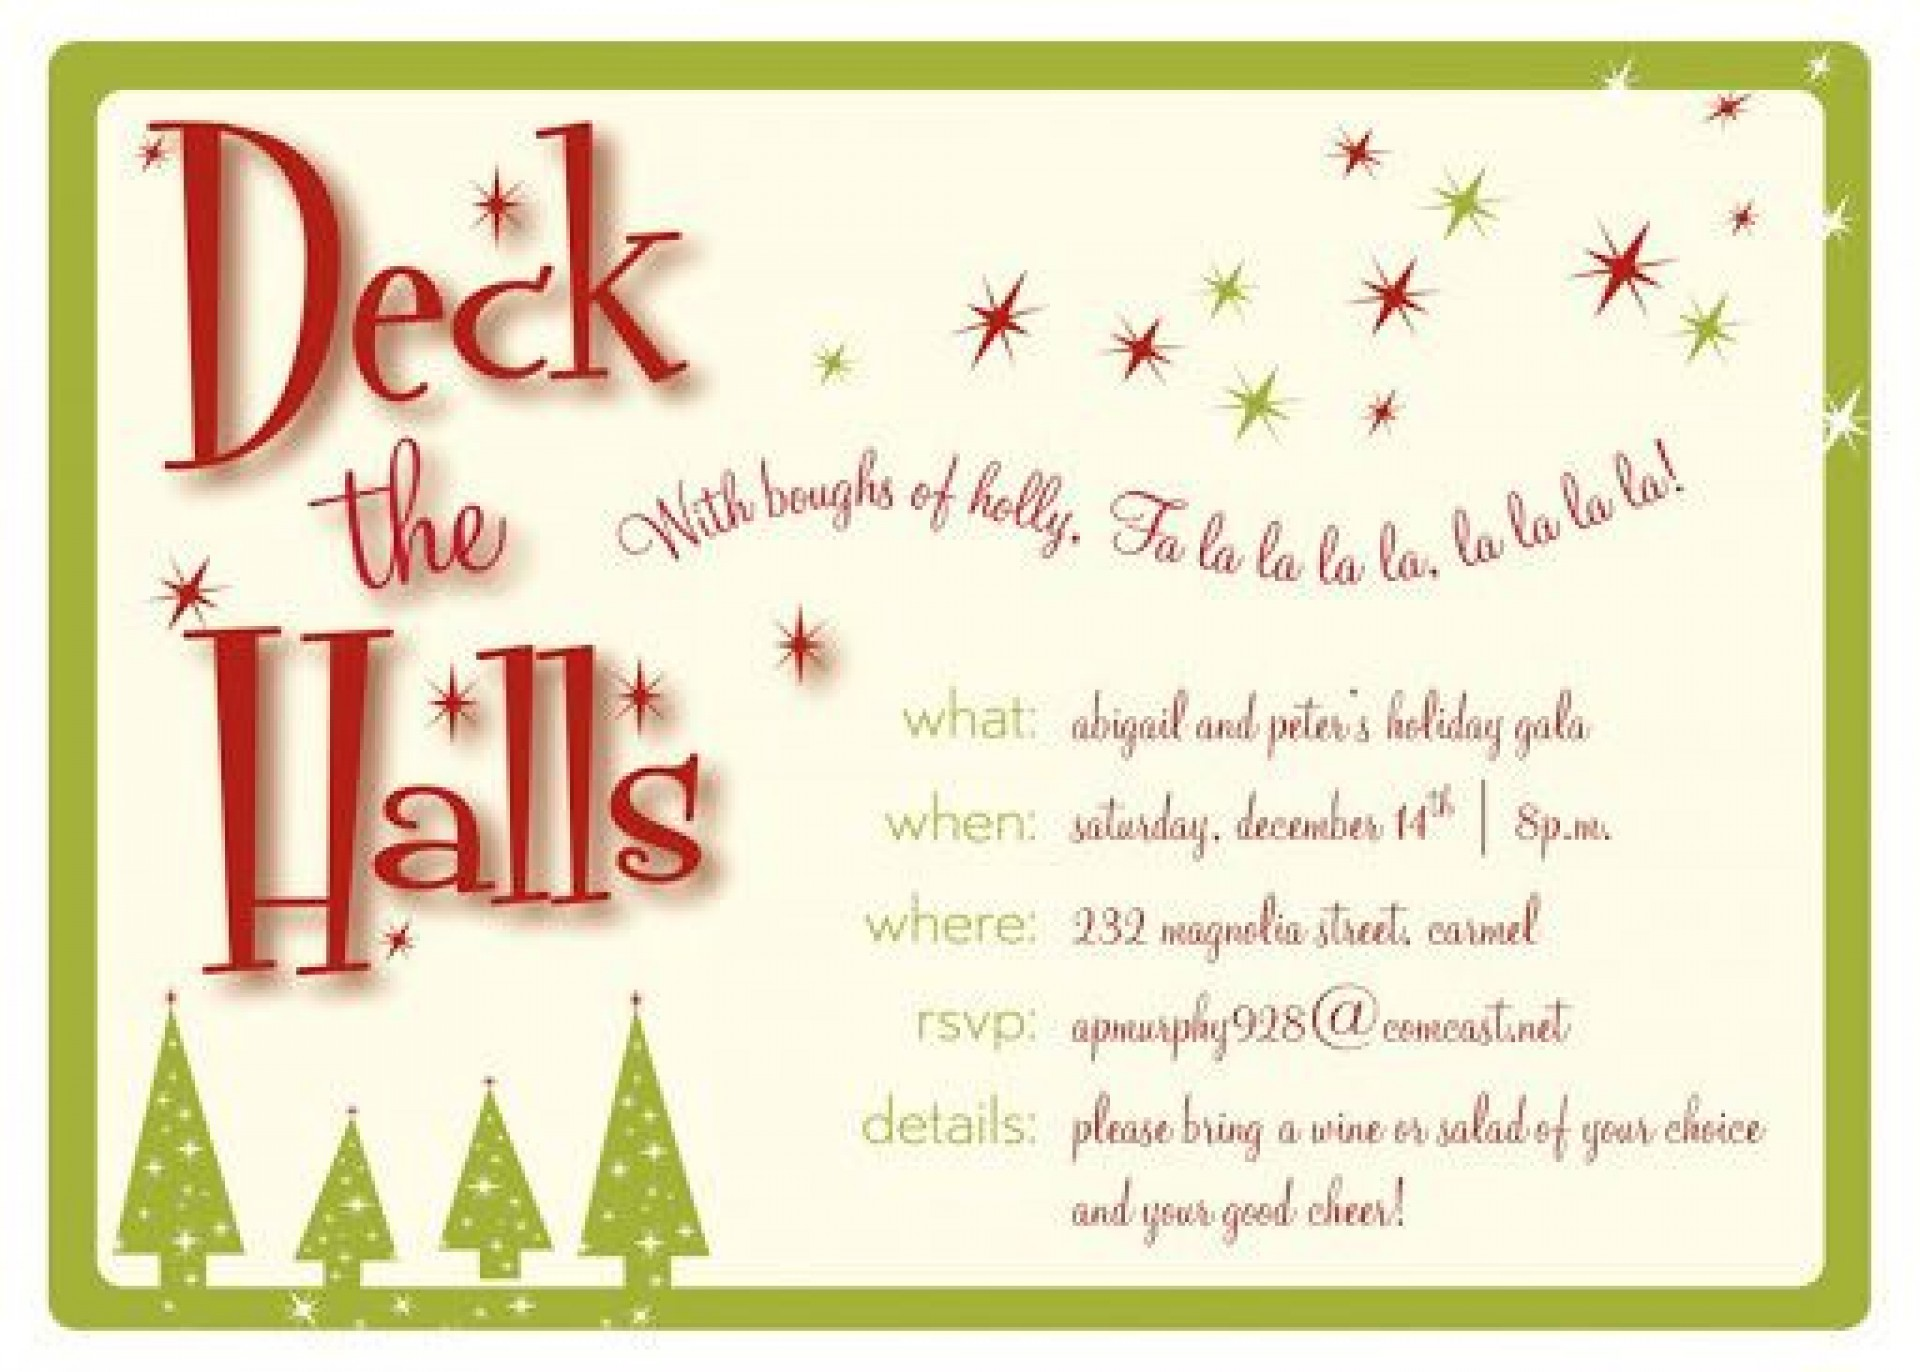 009 Remarkable Free Busines Holiday Party Invitation Template High Resolution  Templates Printable Office1920